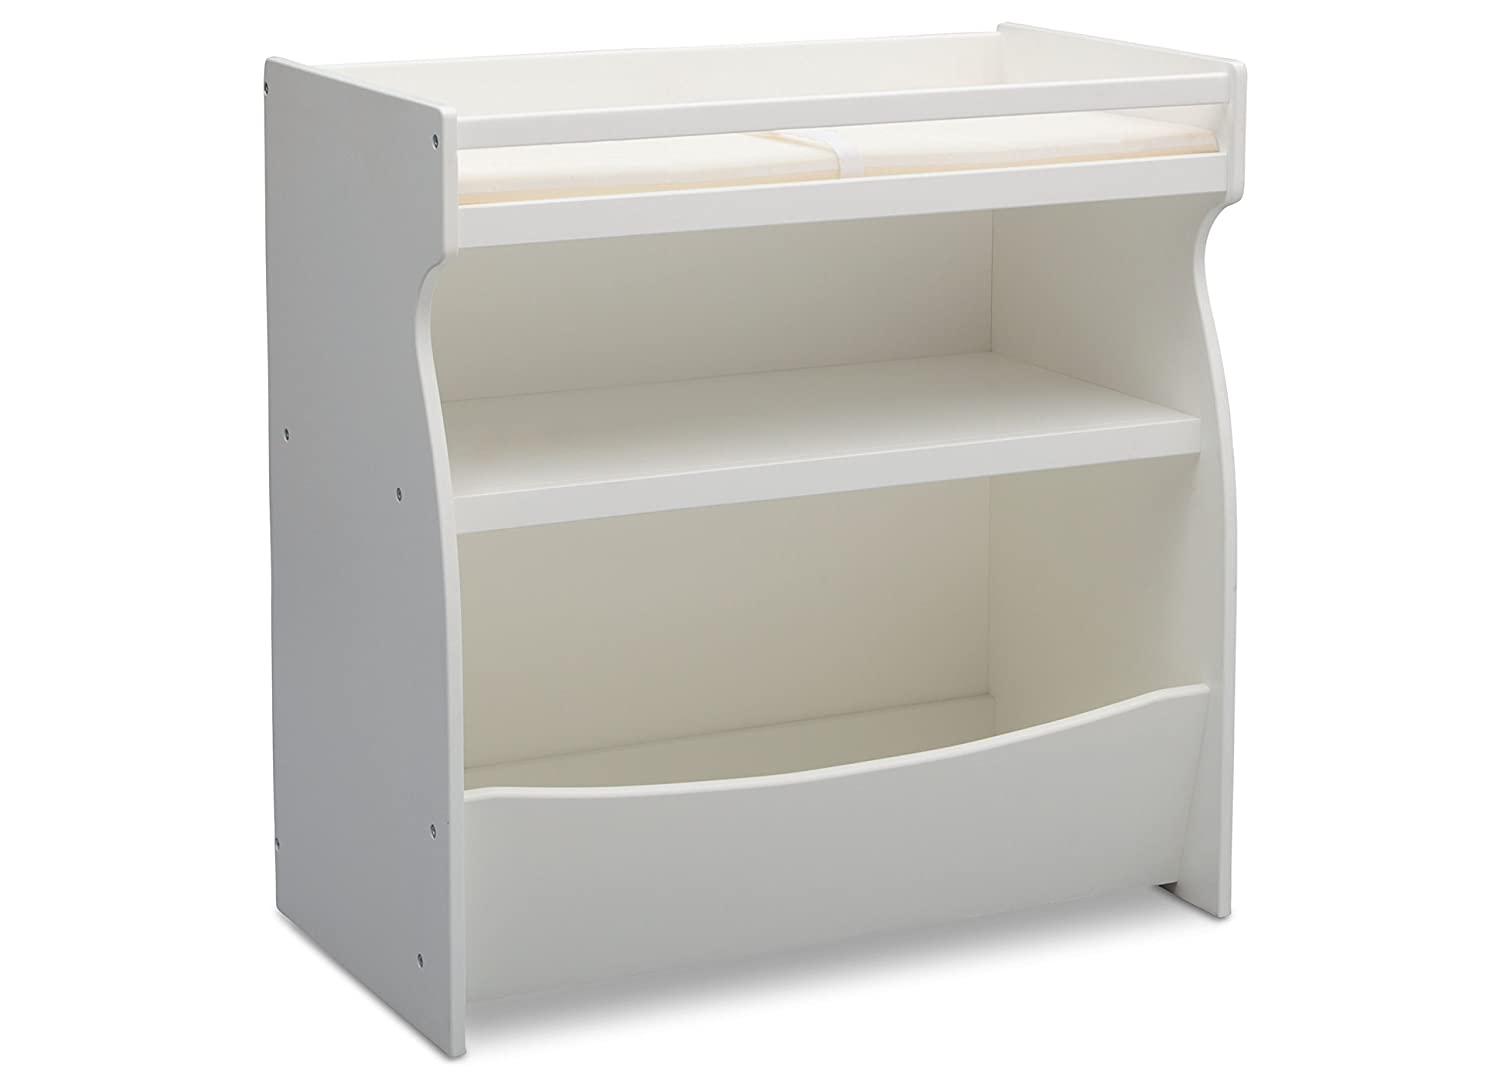 Delta Children 2-in-1 Changing Table and Storage Unit, Grey 530240-026